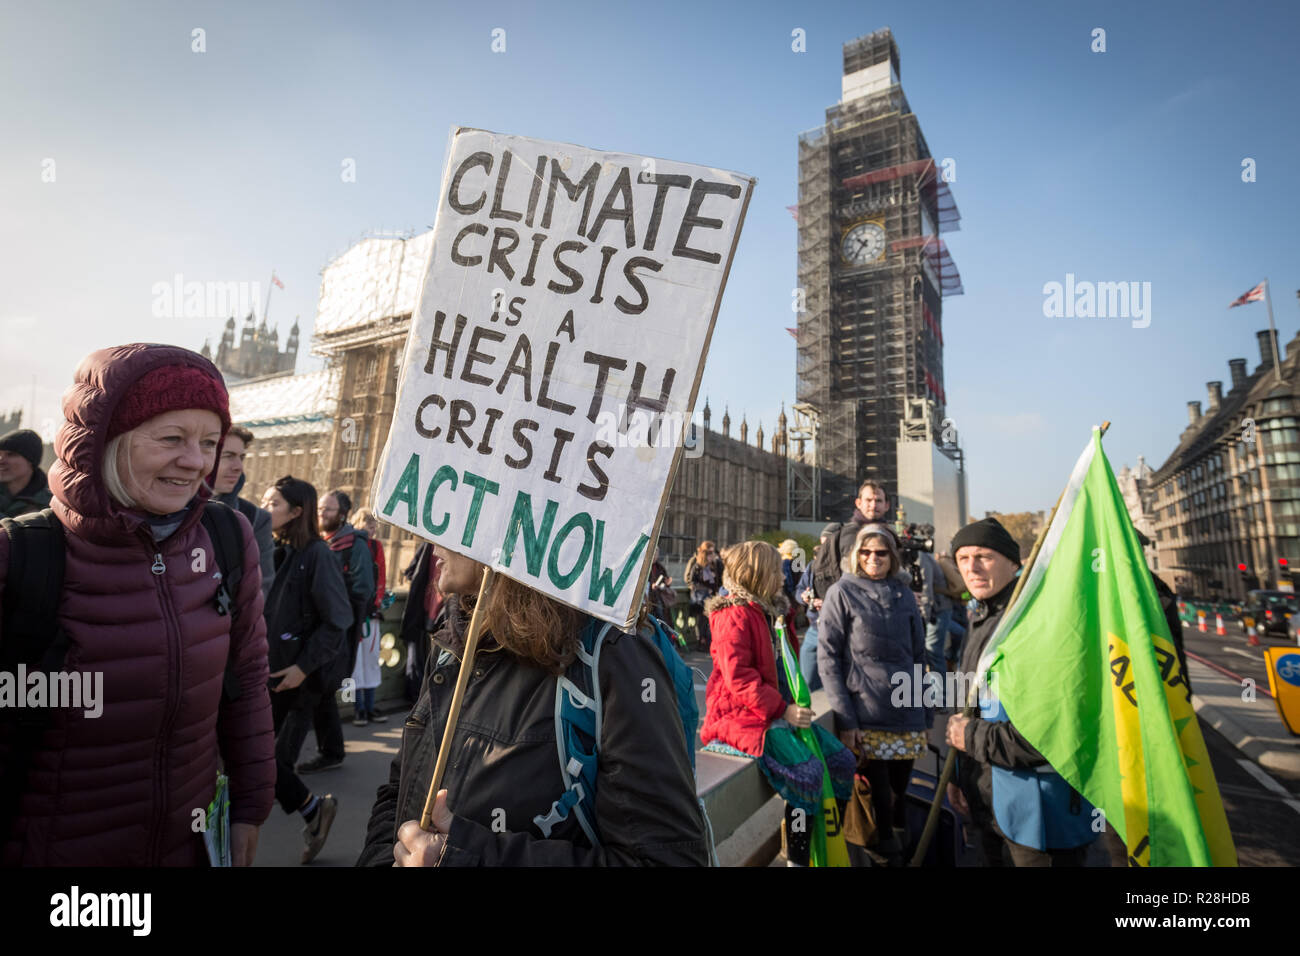 London, UK. 17th November, 2018. Environmental campaigners from Extinction Rebellion block Westminster Bridge, one of five bridges blocked in central London, as part of a Rebellion Day event to highlight 'criminal inaction in the face of climate change catastrophe and ecological collapse' by the UK Government as part of a programme of civil disobedience during which scores of campaigners have been arrested. Credit: Guy Corbishley/Alamy Live News Stock Photo